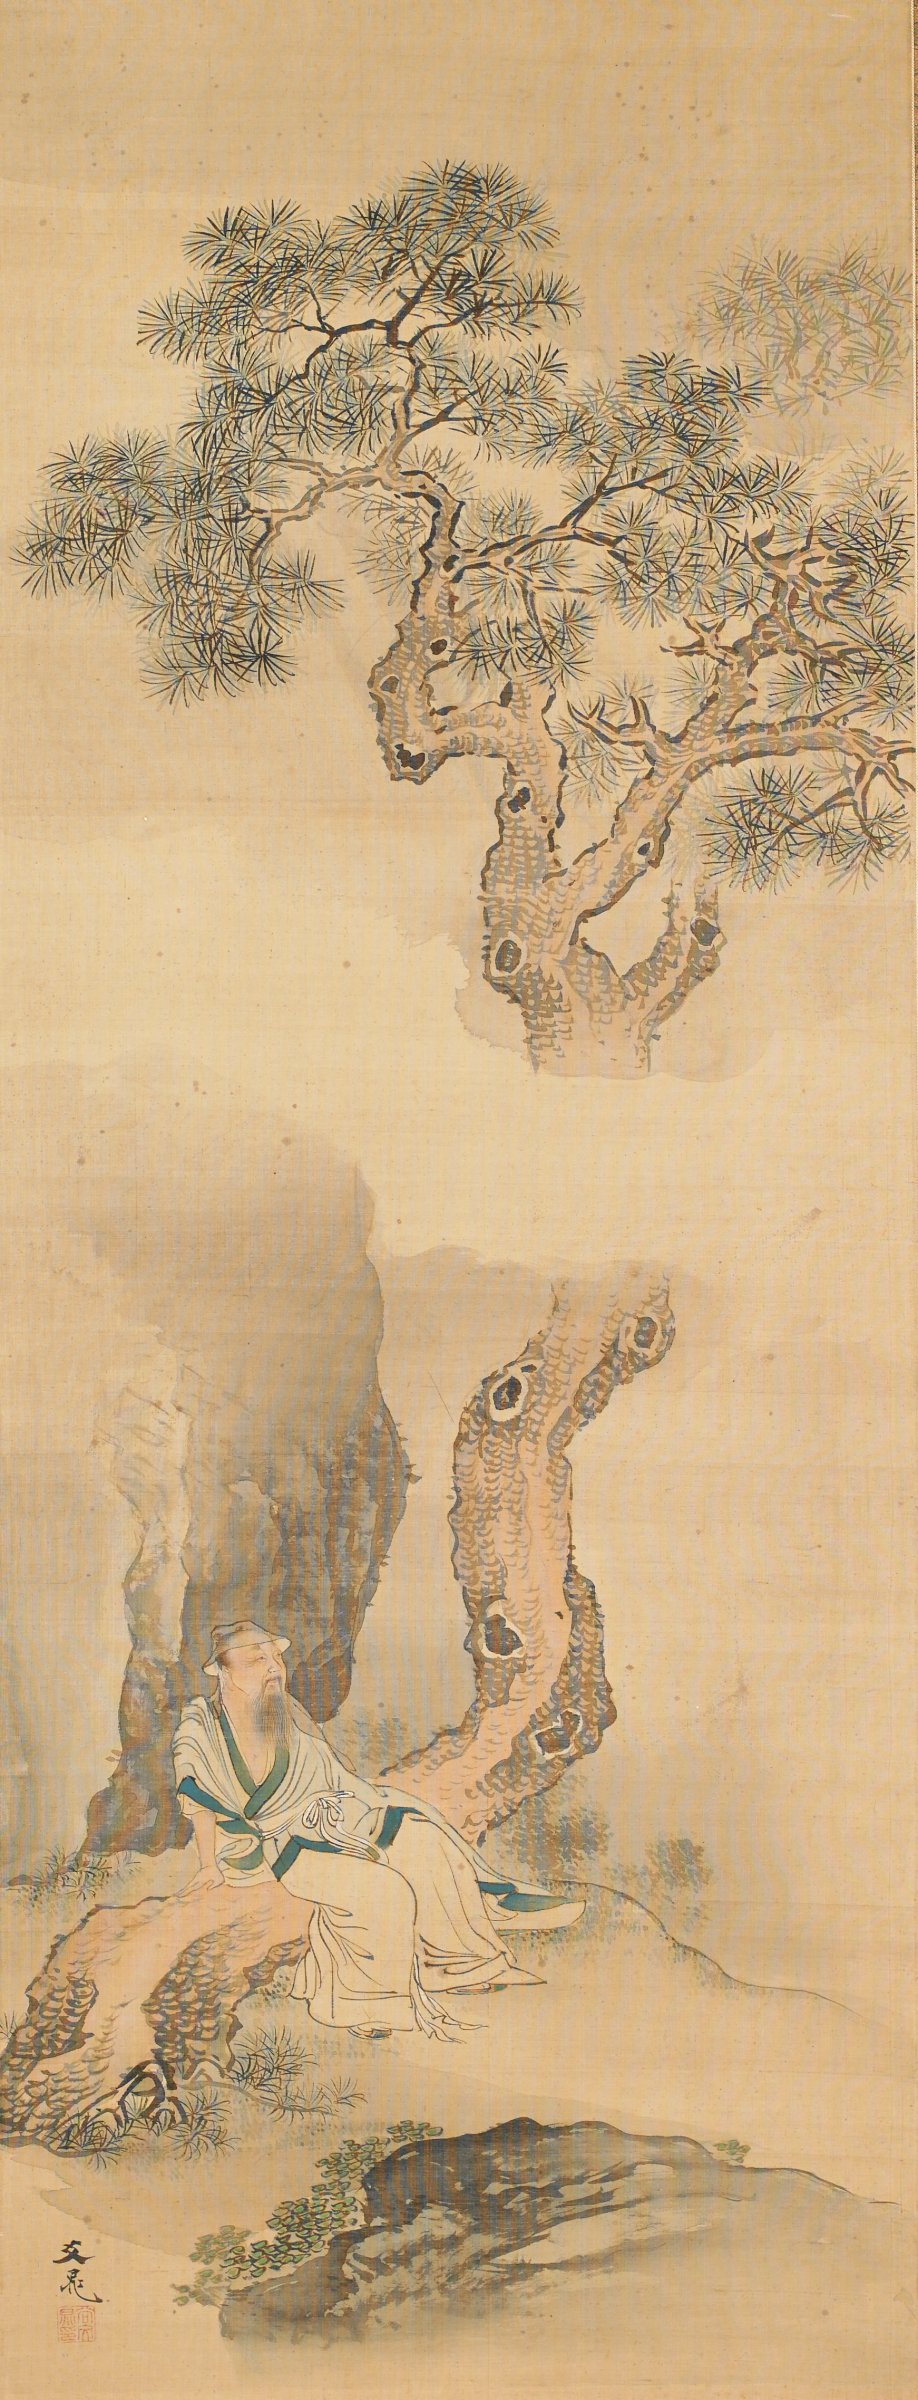 Figure sitting on a pine tree with a hat used to strain tea.